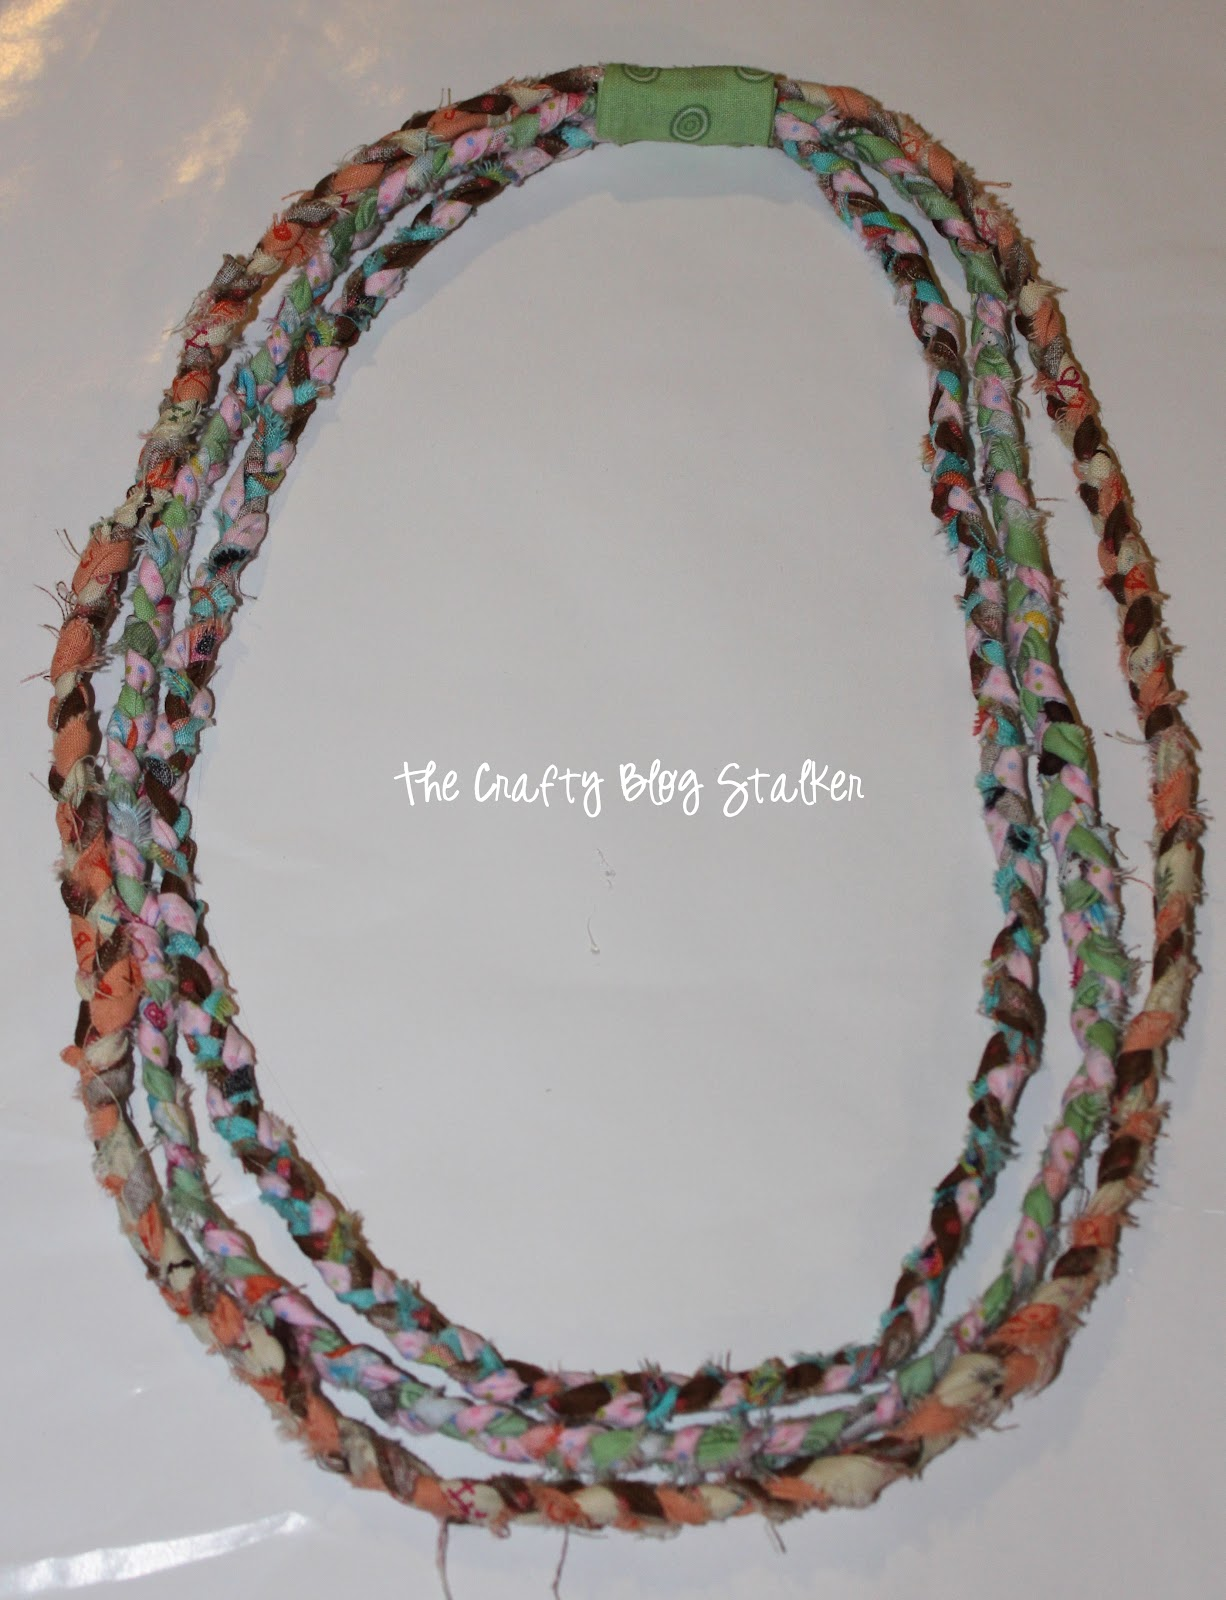 No-Sew Braided Fabric Necklace Tutorial - The Crafty Blog Stalker